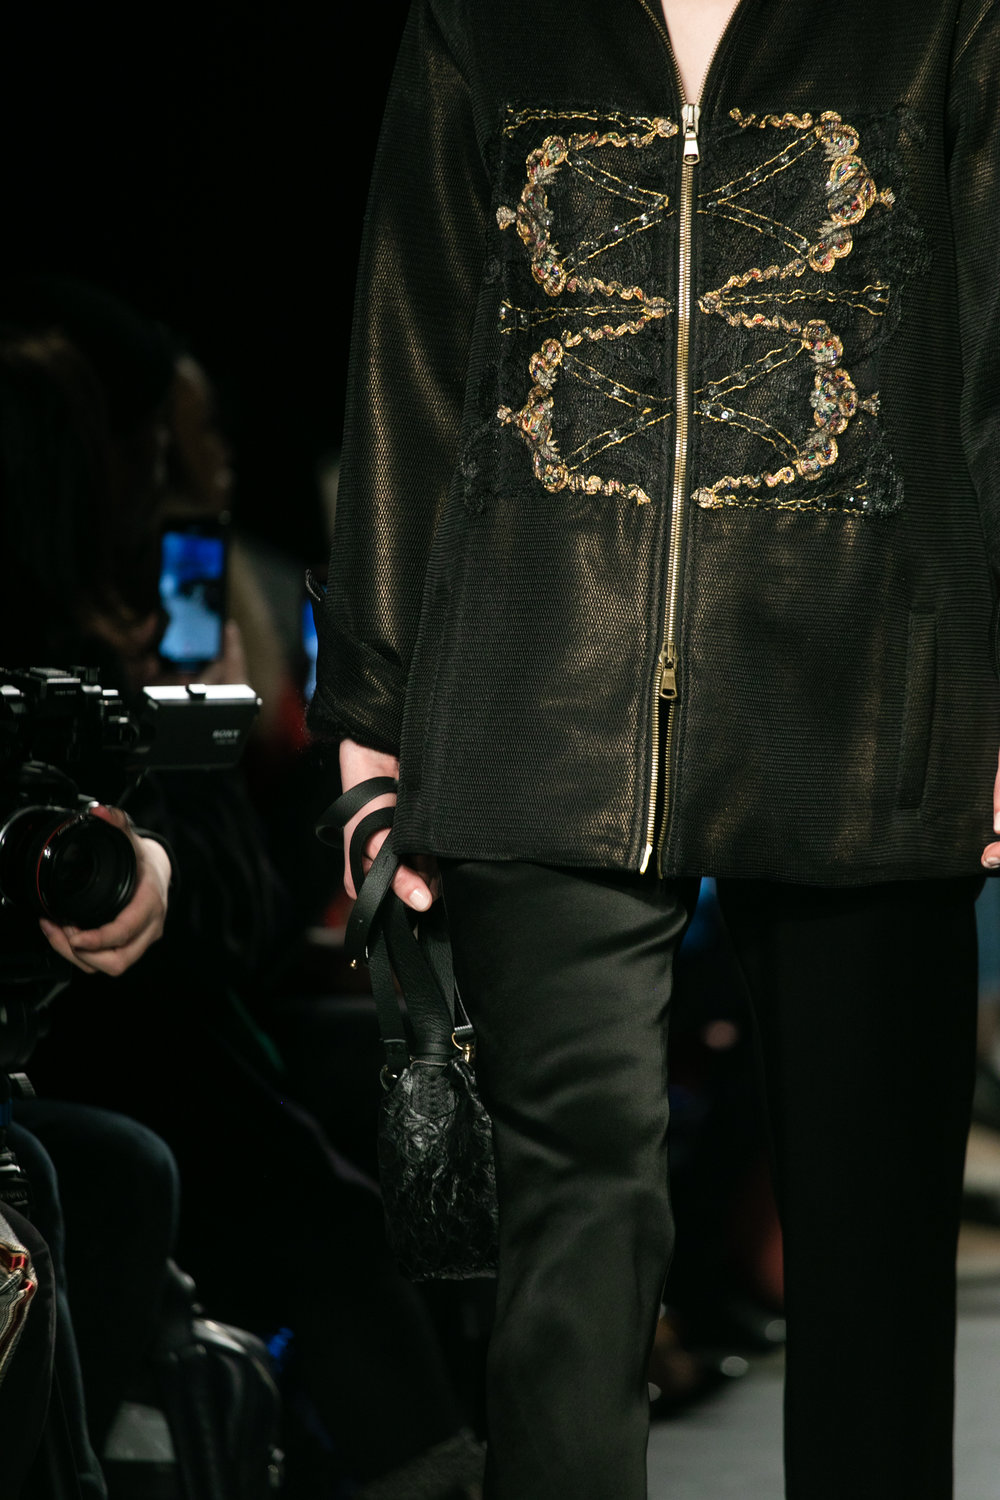 Gold Embellished Jacket - A limited edition piece with gold embroidery detailing layered with lace.